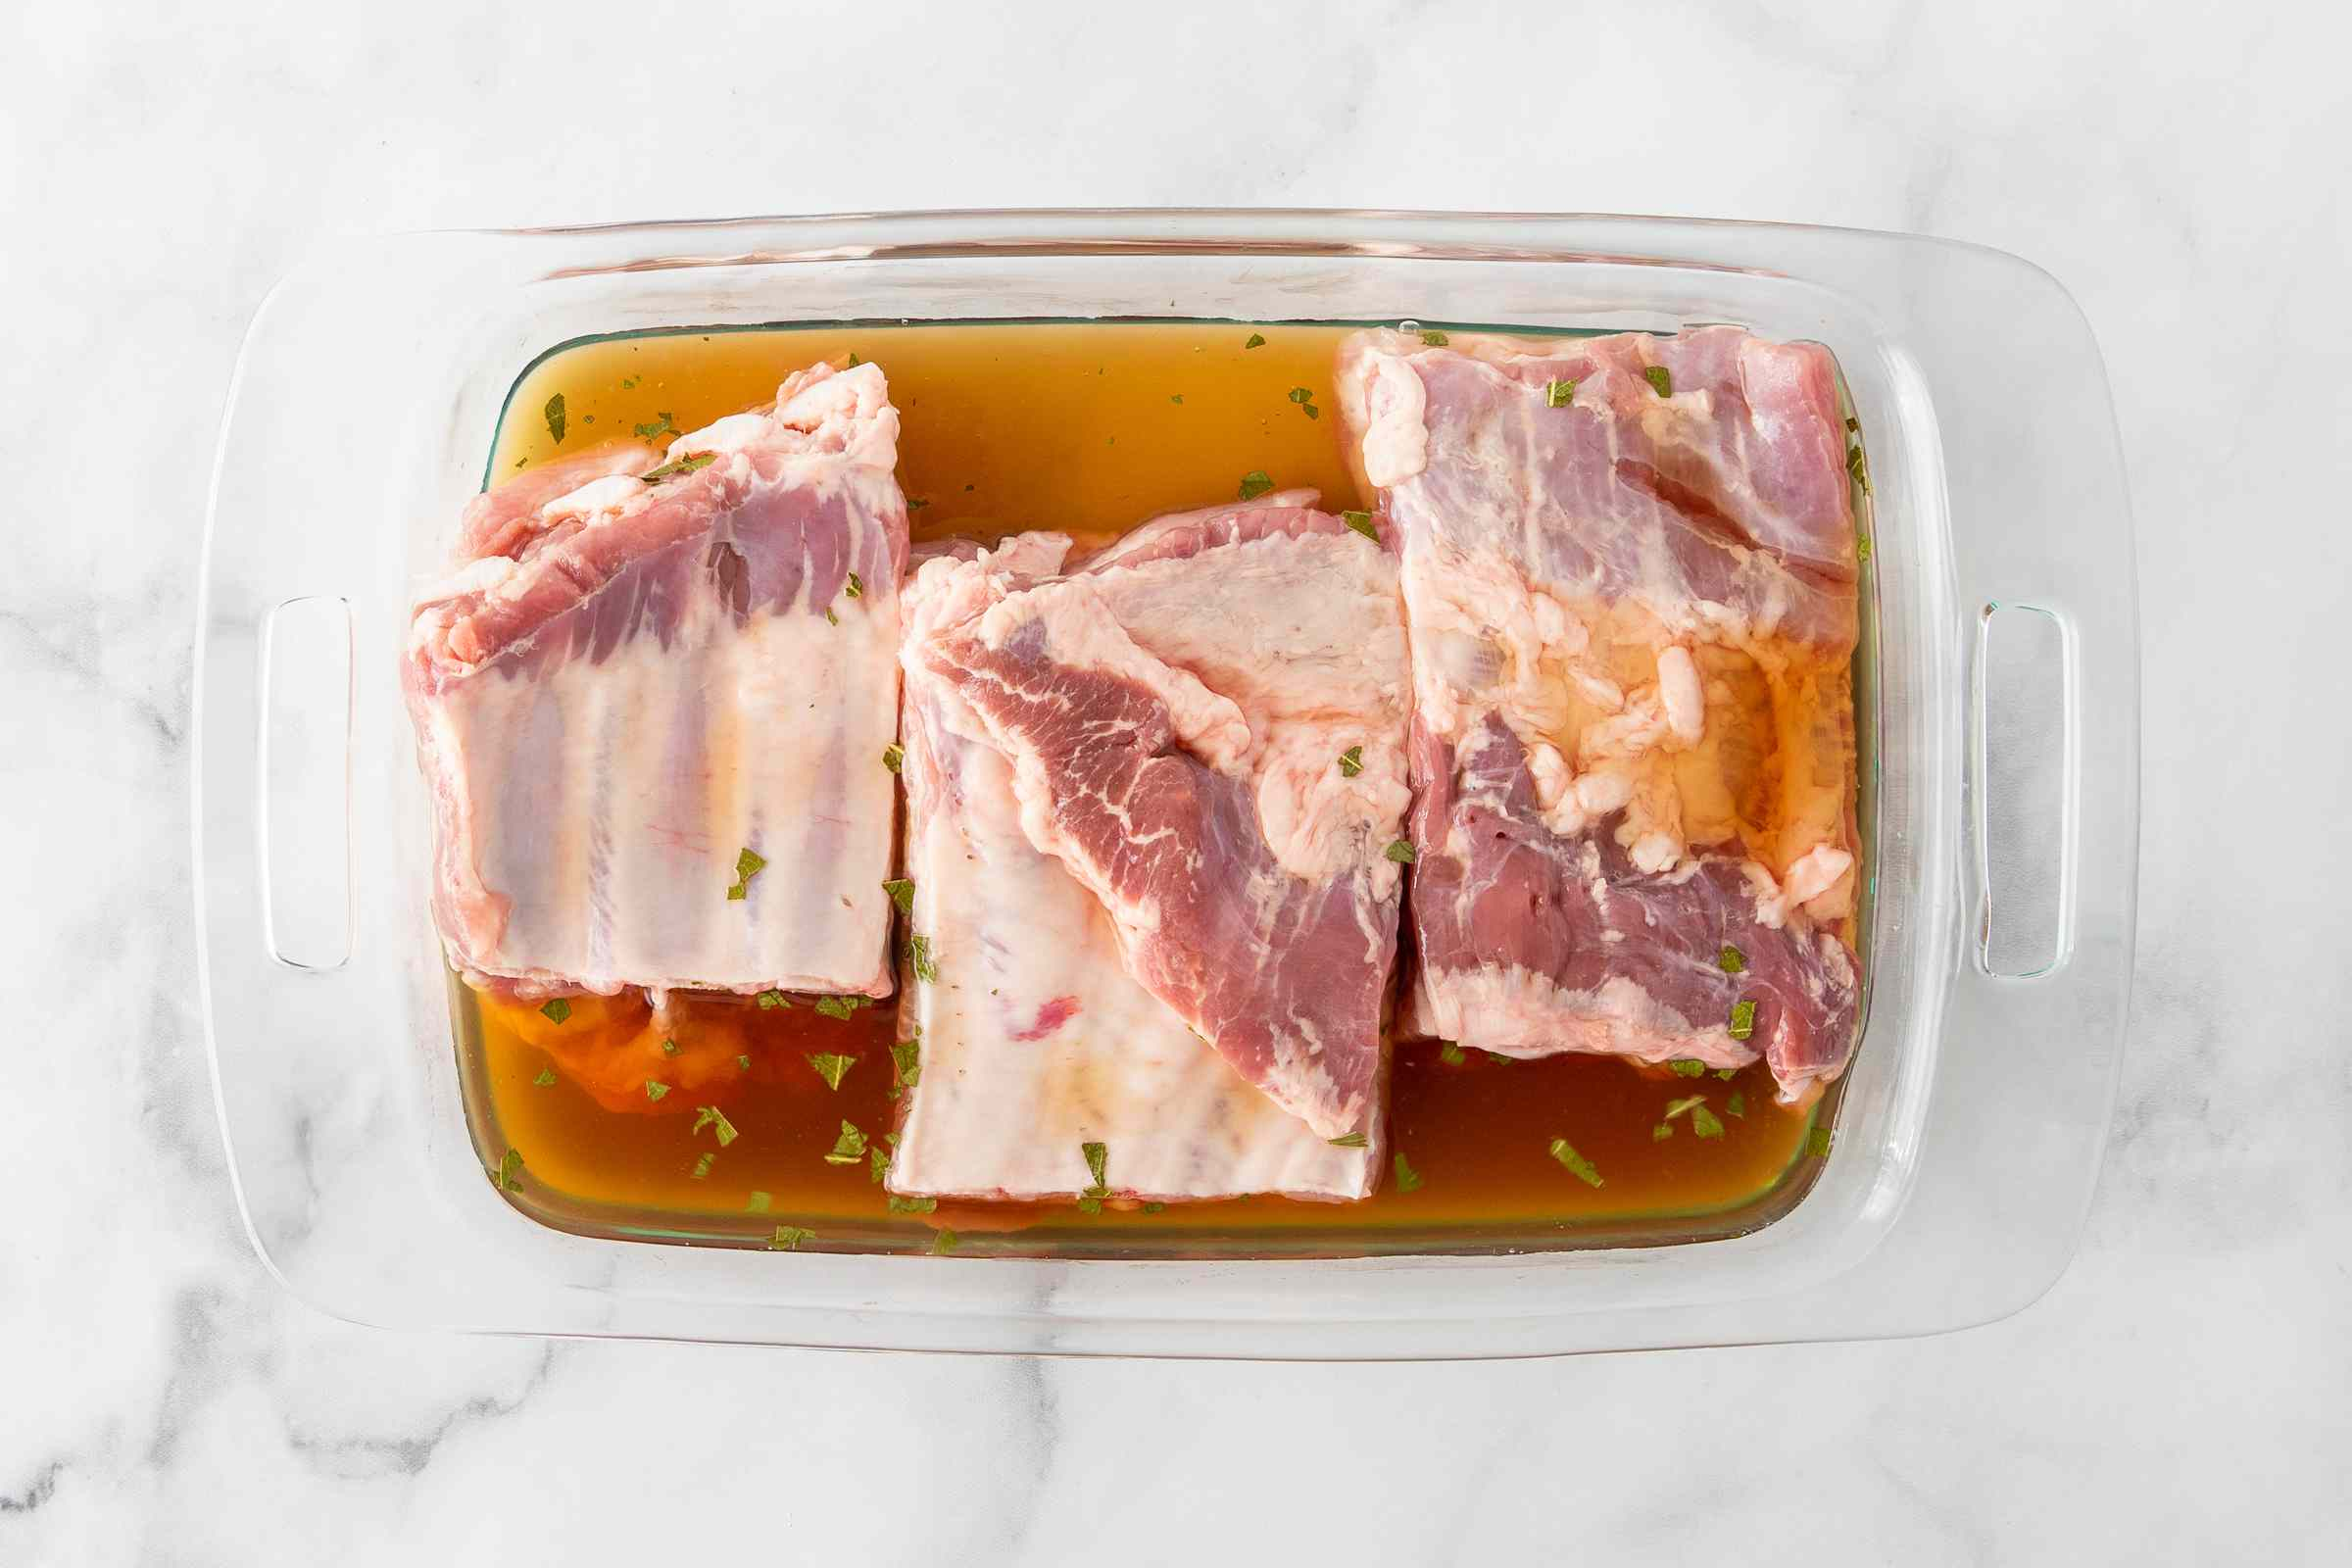 spareribs and marinade in a container